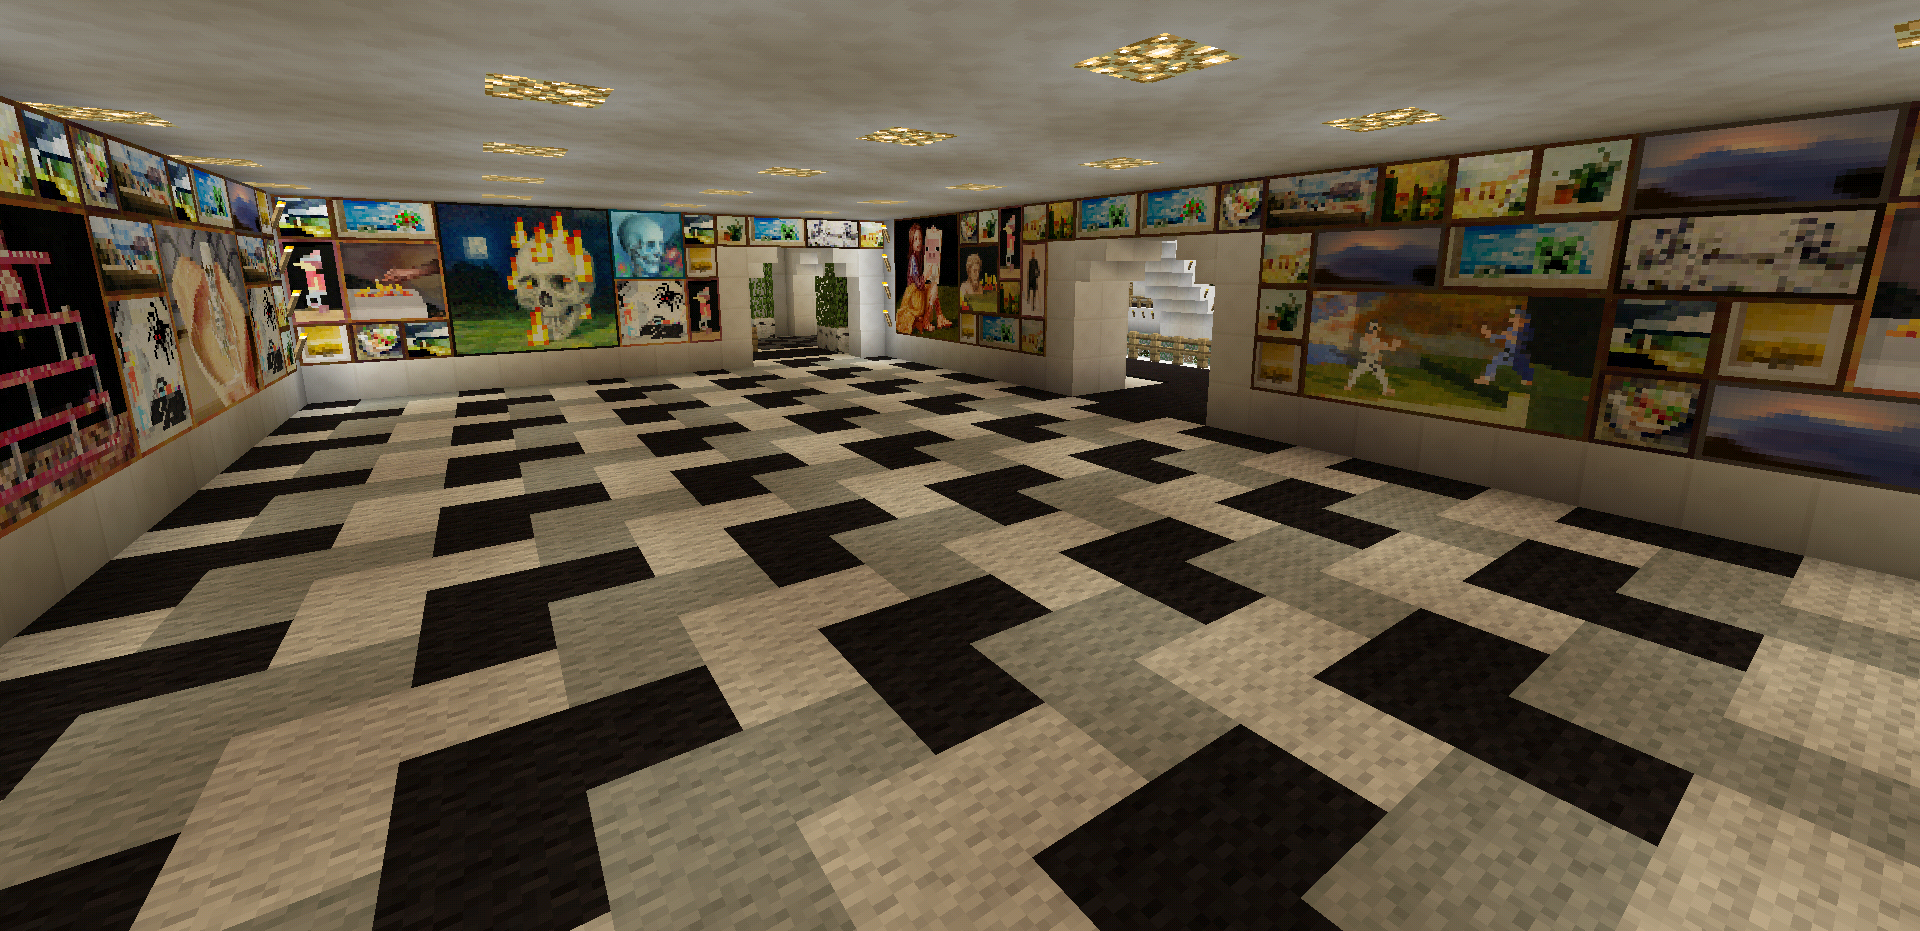 Minecraft Art Room and Decor Carpet Design Creations | Minecraft ...